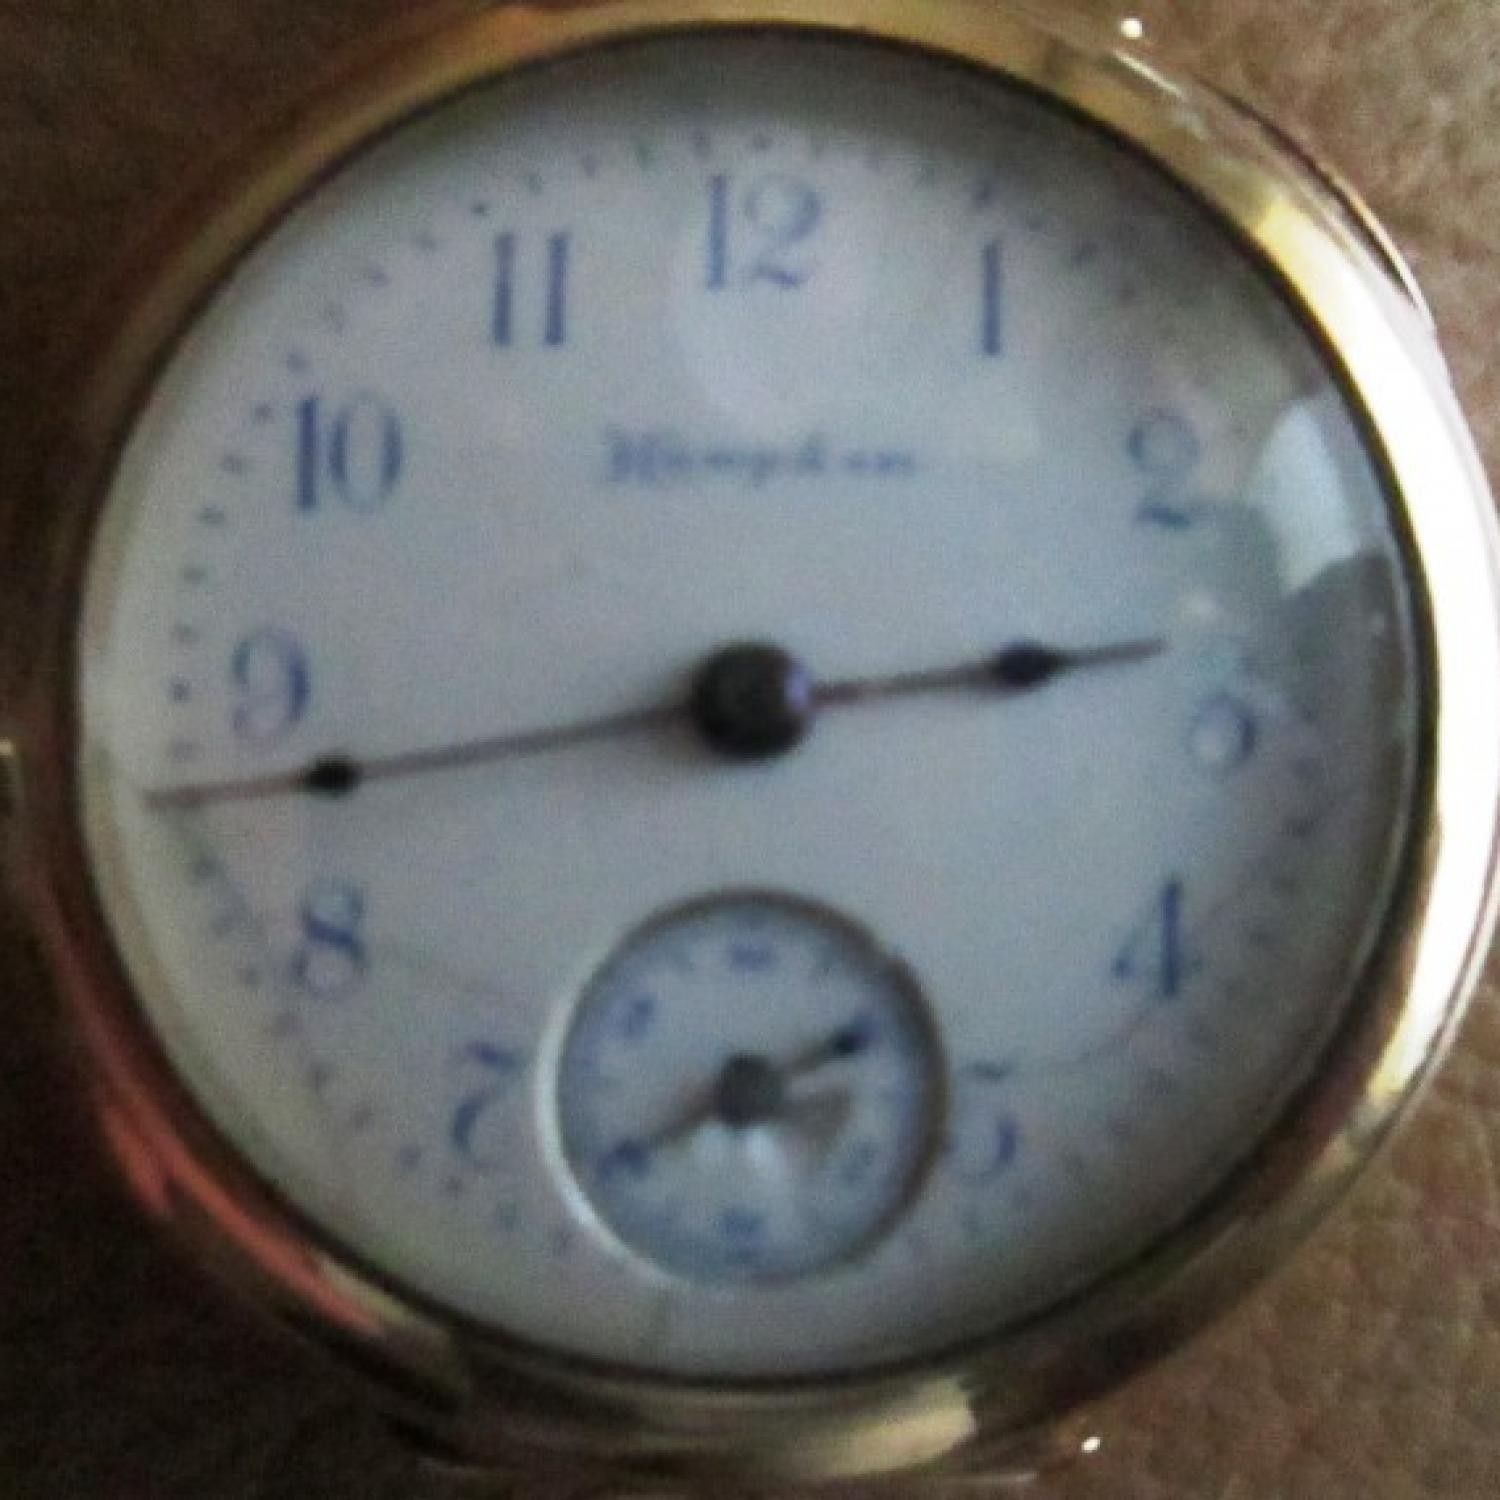 Image of Hampden Molly Stark #1884370 Dial